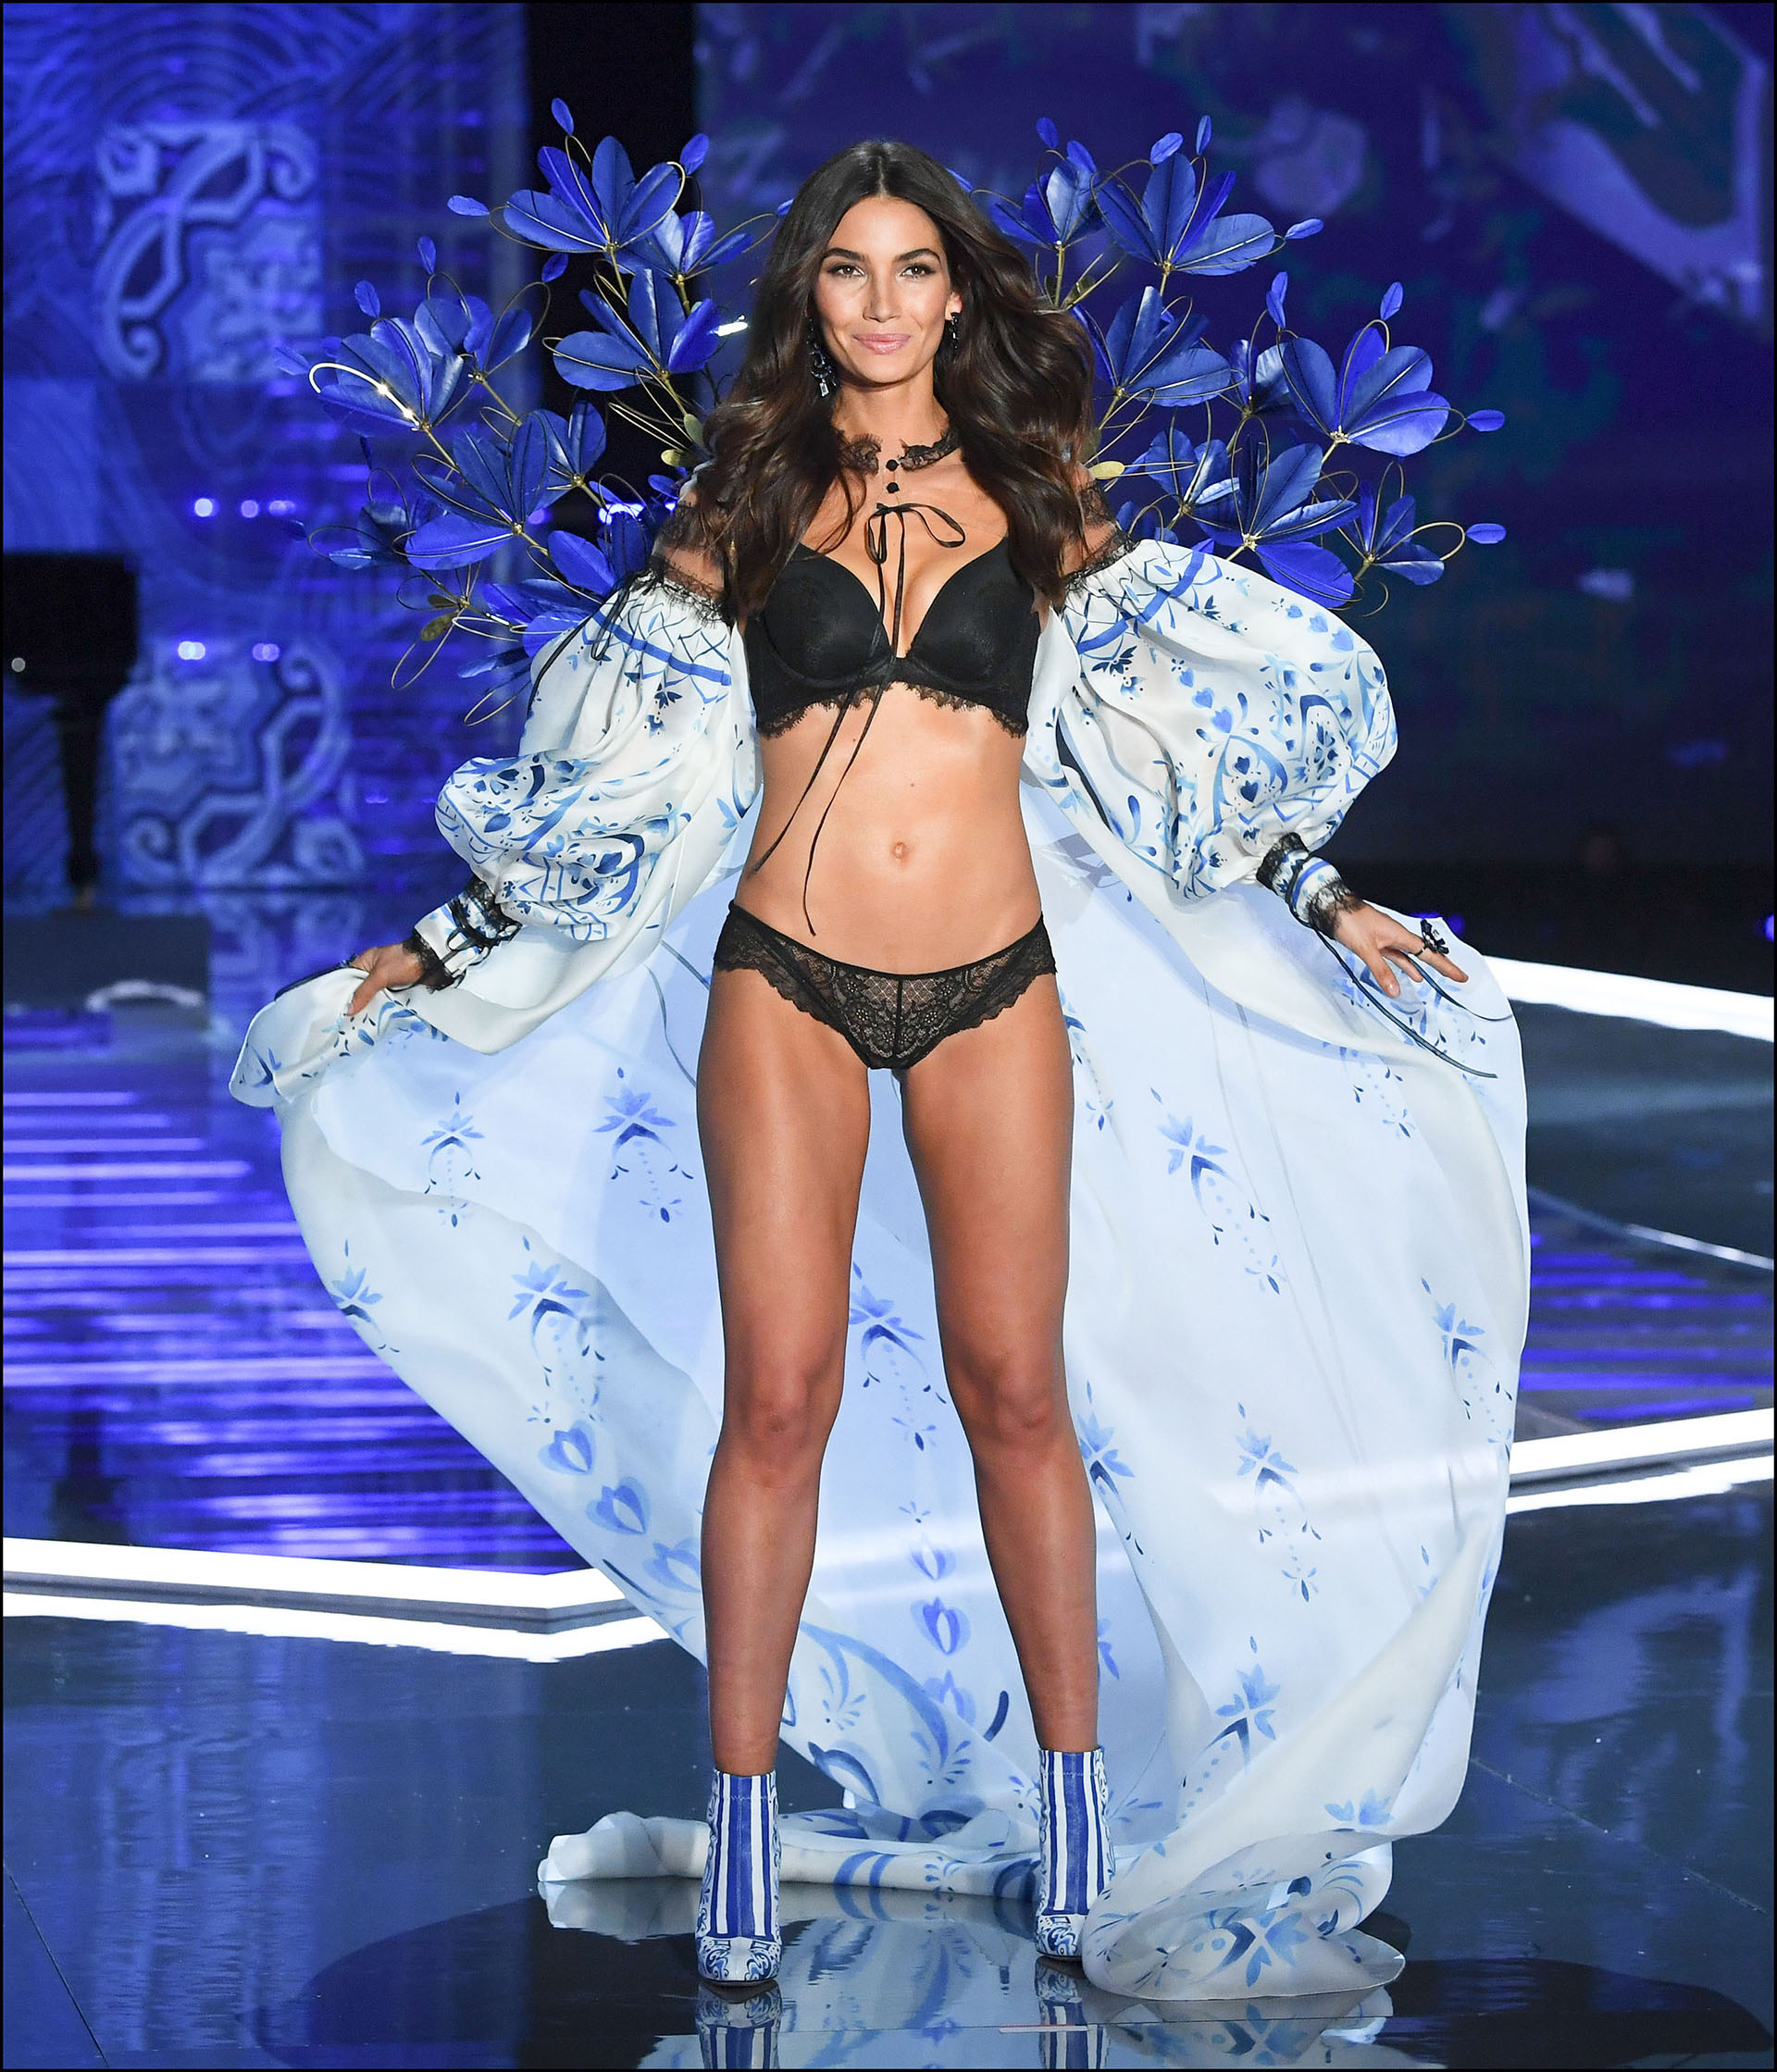 Lily Aldridge is seen on stage at the Victoria